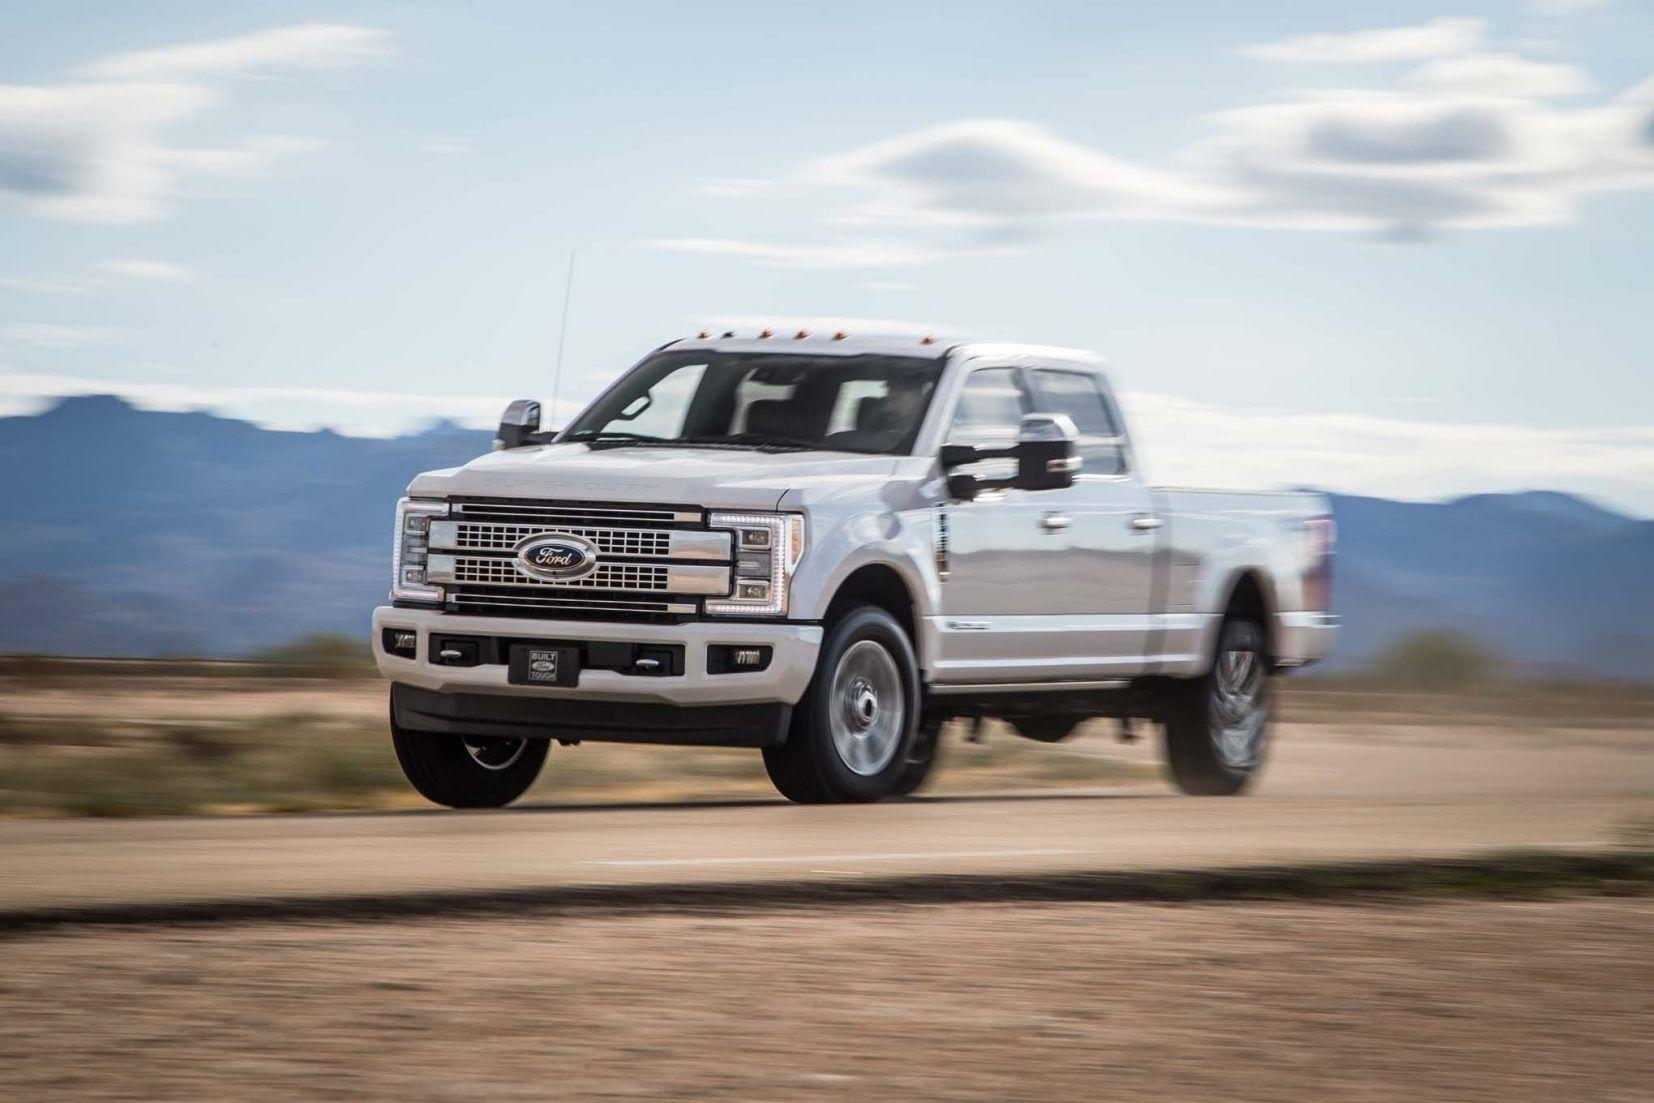 Best 2019 Ford F250 Rear High Resolution Wallpaper | CarWaw